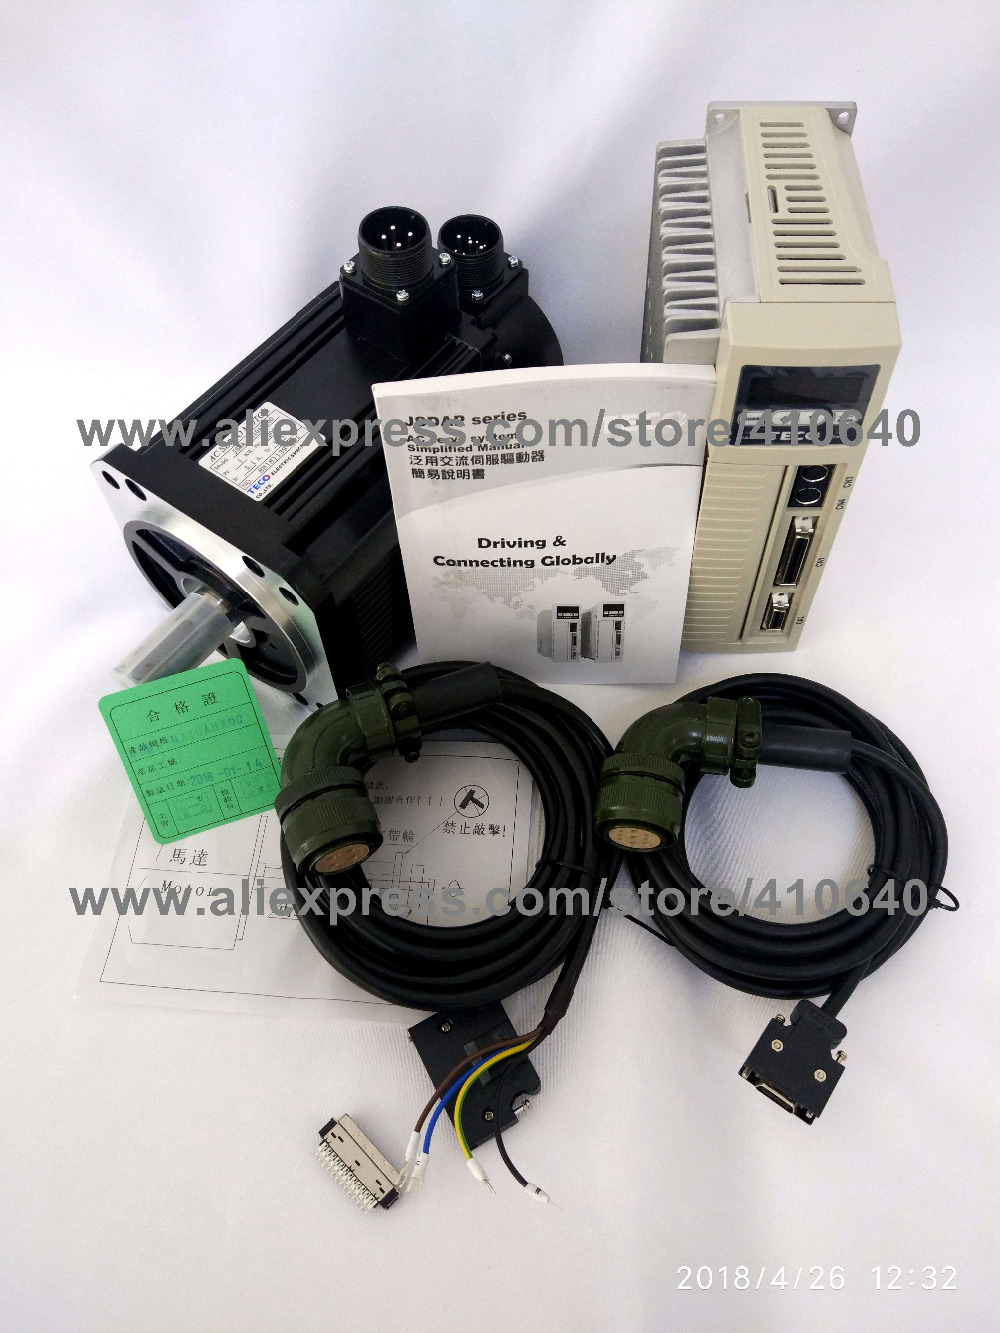 Genuine TECO 3KW Servo Motor JSMA-MB30ABK01 and Servo Motor Drive JSDA-75A3 with 42.96 Peak Torque free shipping by dhl teco 3kw servo motor jsma mb30abk01 and servo motor drive jsda 75a3 with 42 96 peak torque